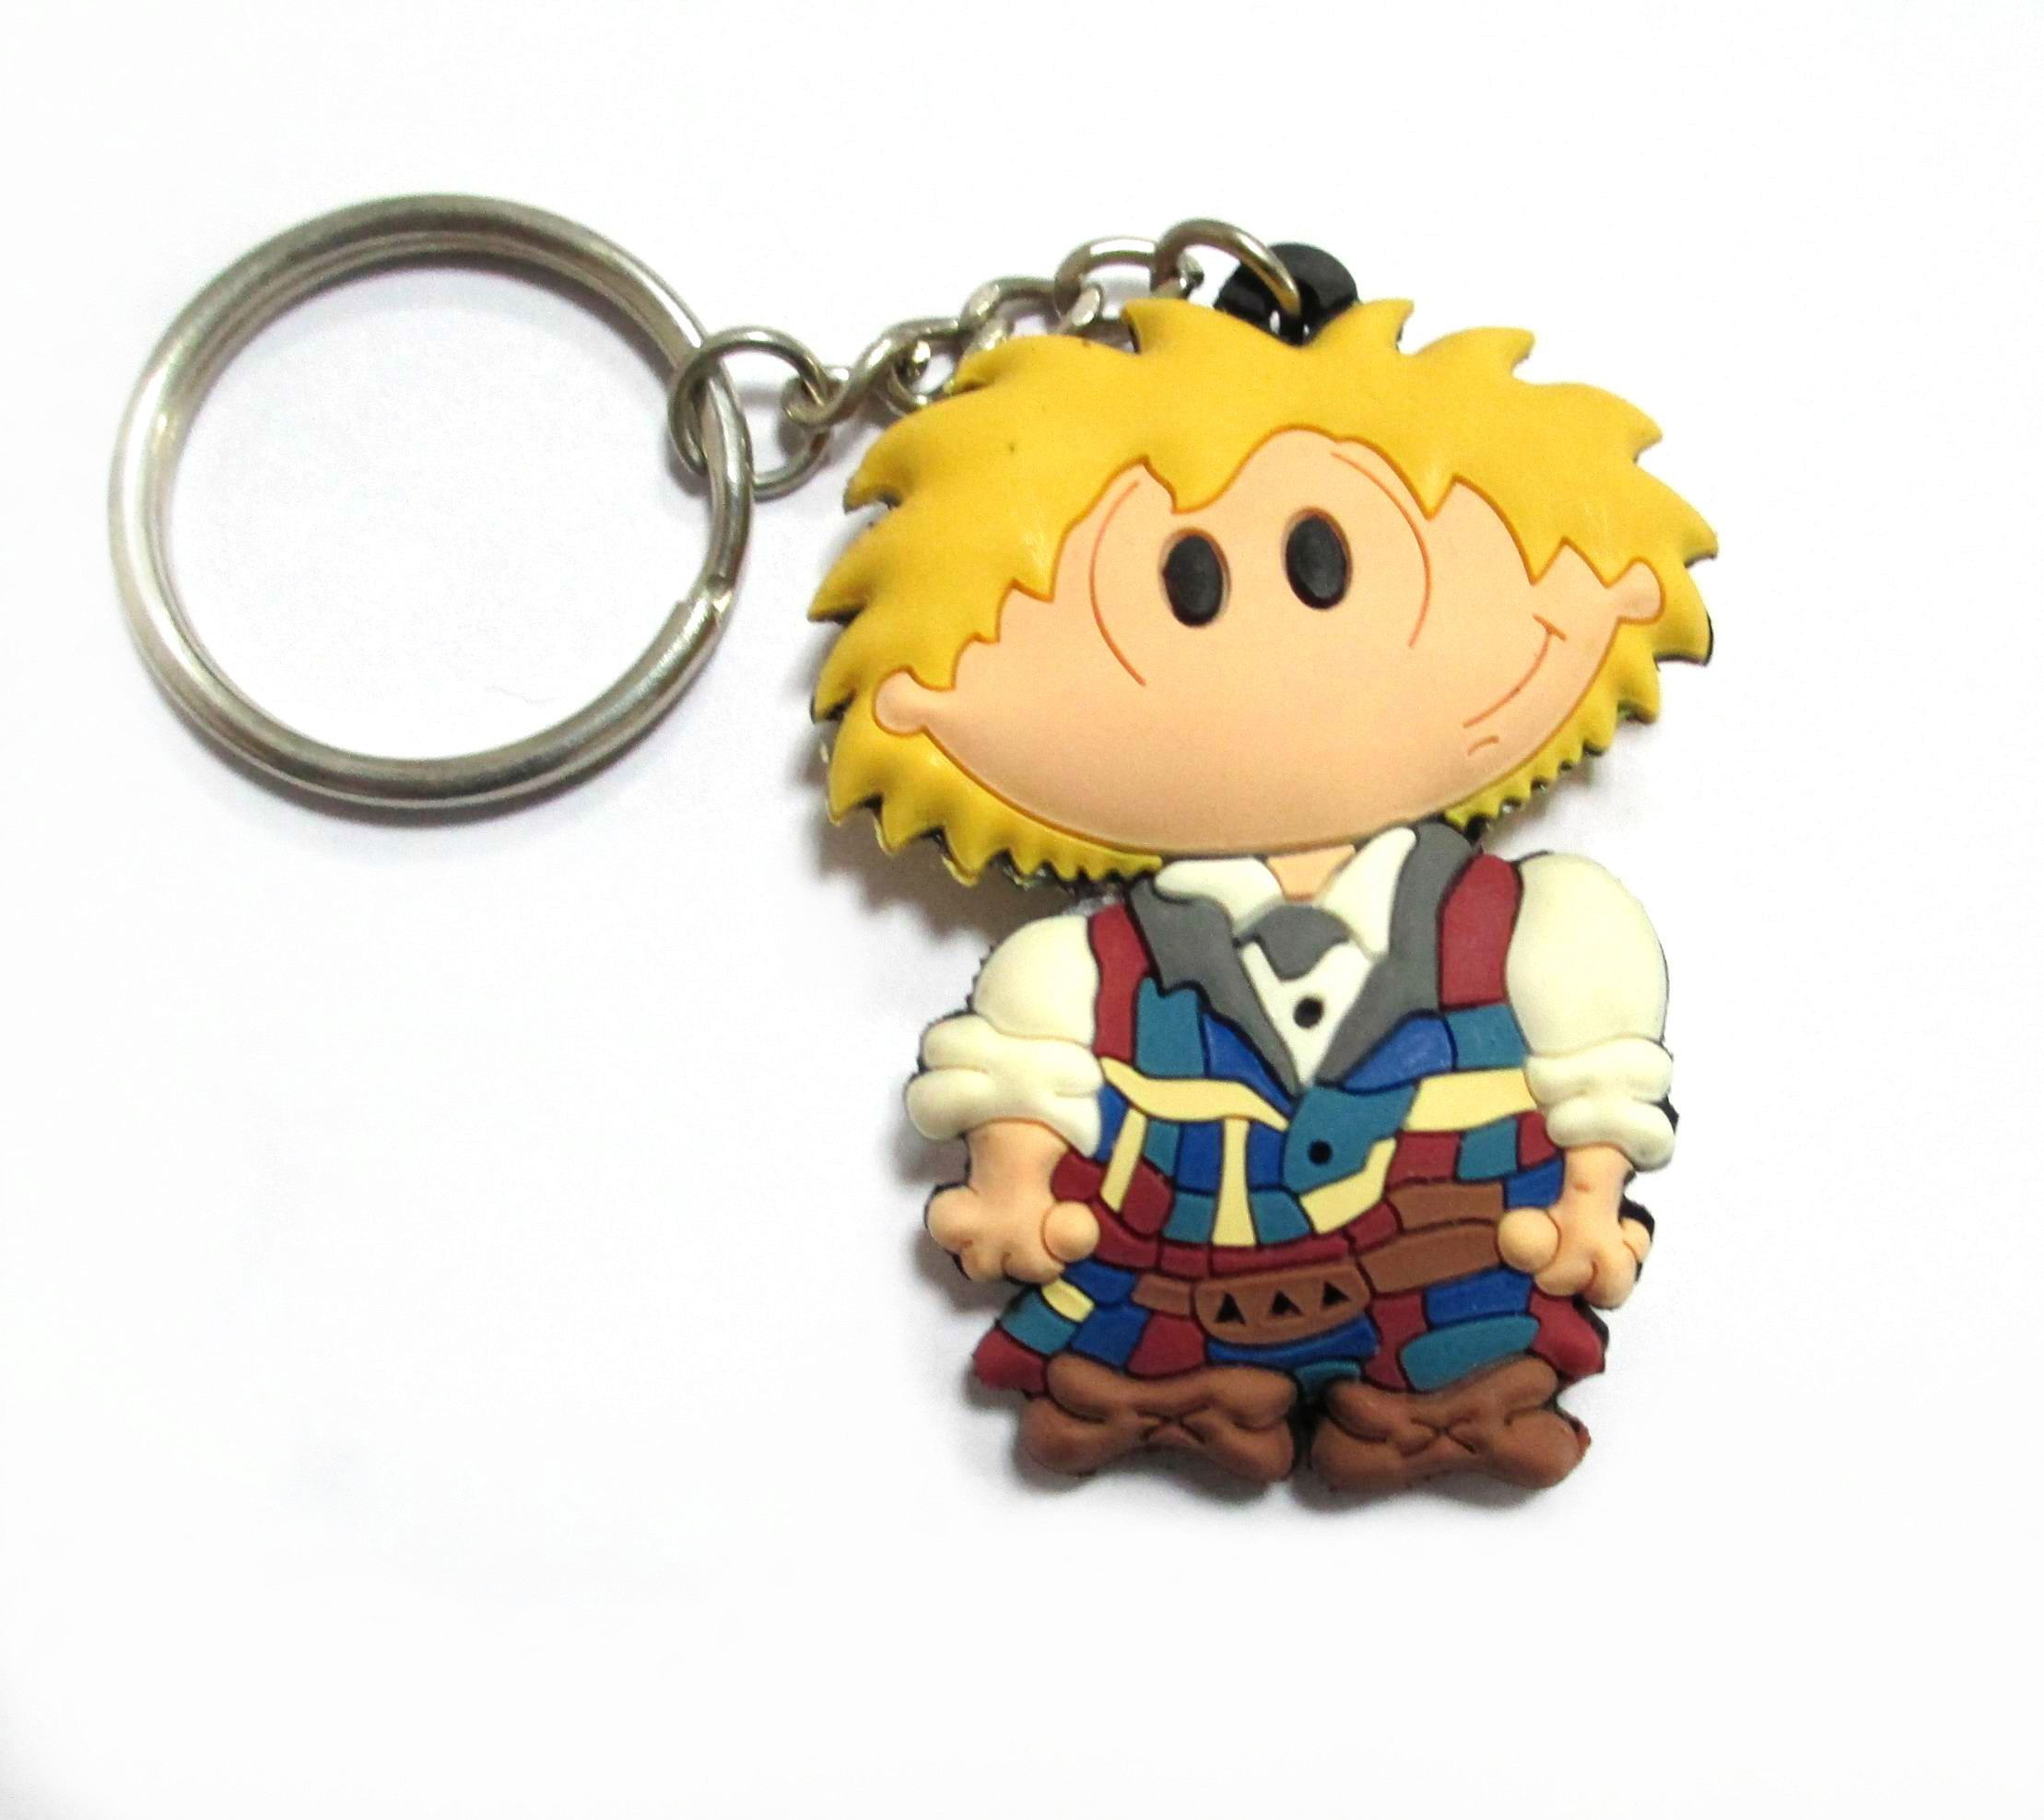 Formal pvc keychain